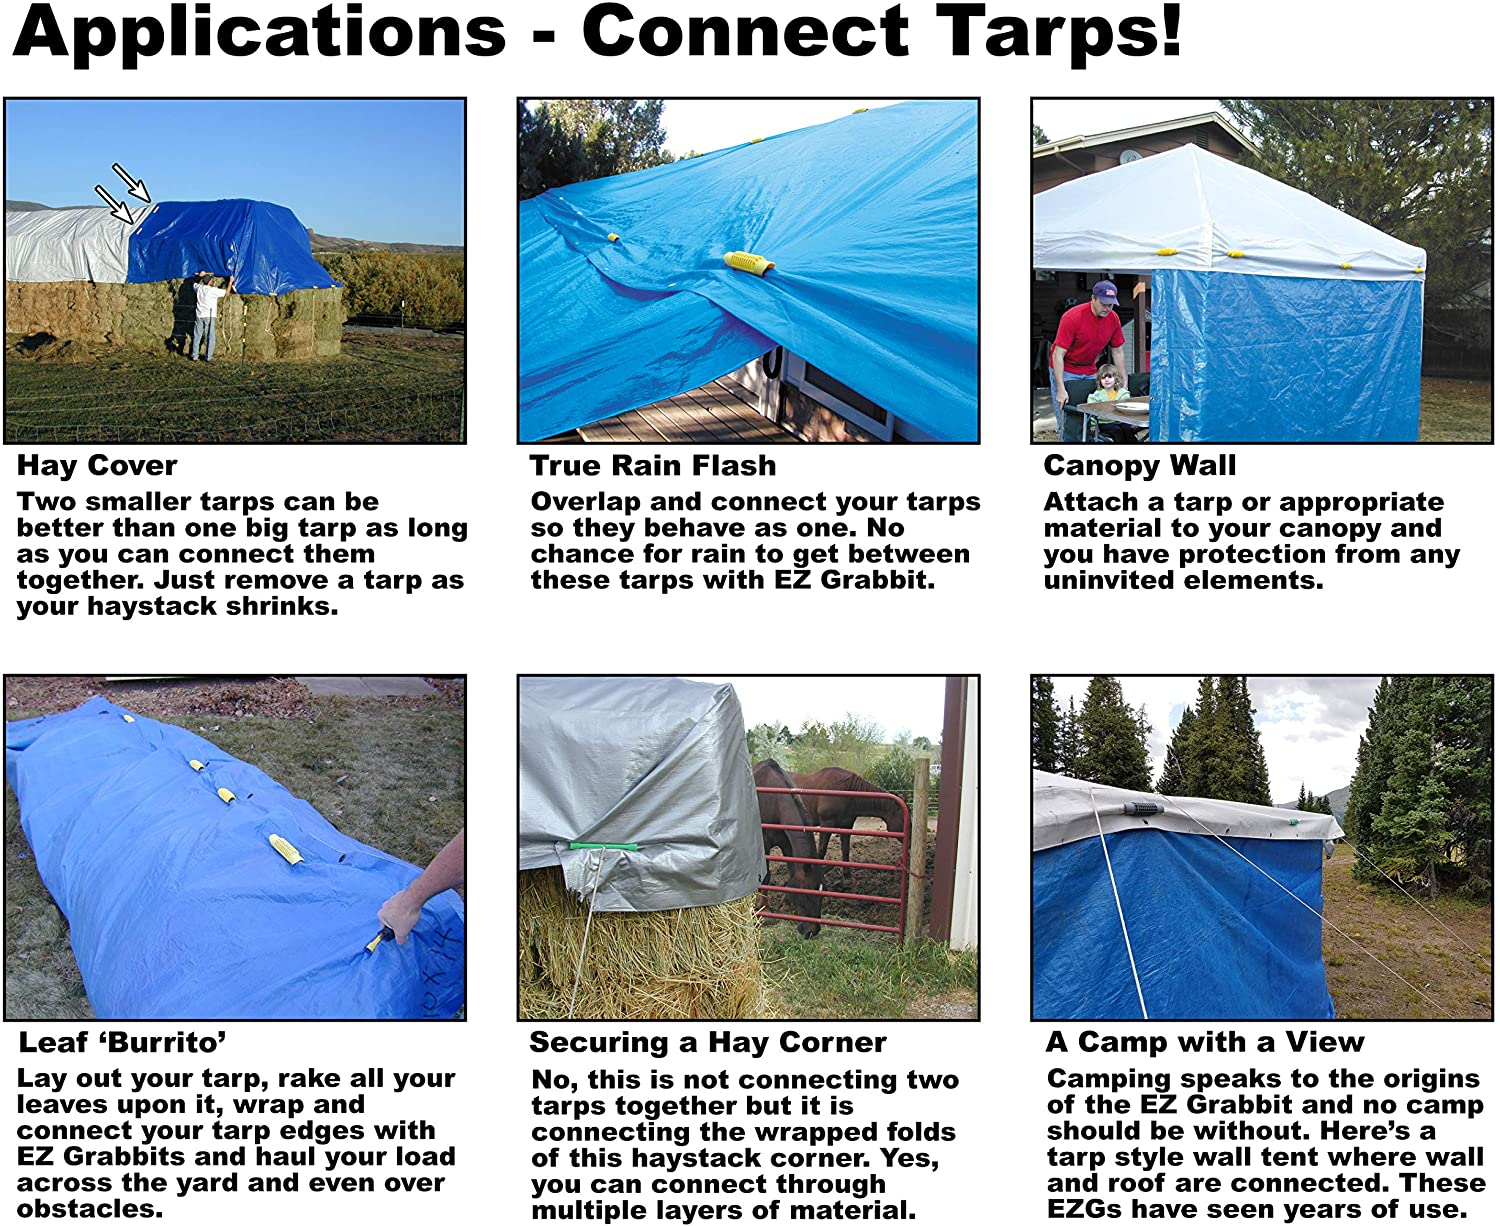 Heavy Duty Clamps//Tarp Hold Downs Perfect for Small//Large Tarps Awnings 800 Lbs 8-Sets Outdoor Camping J-Link Cargo//Tarp Tie Downs 16-Pack Work Load Car Tarp Cover Swimming Pool Tarp